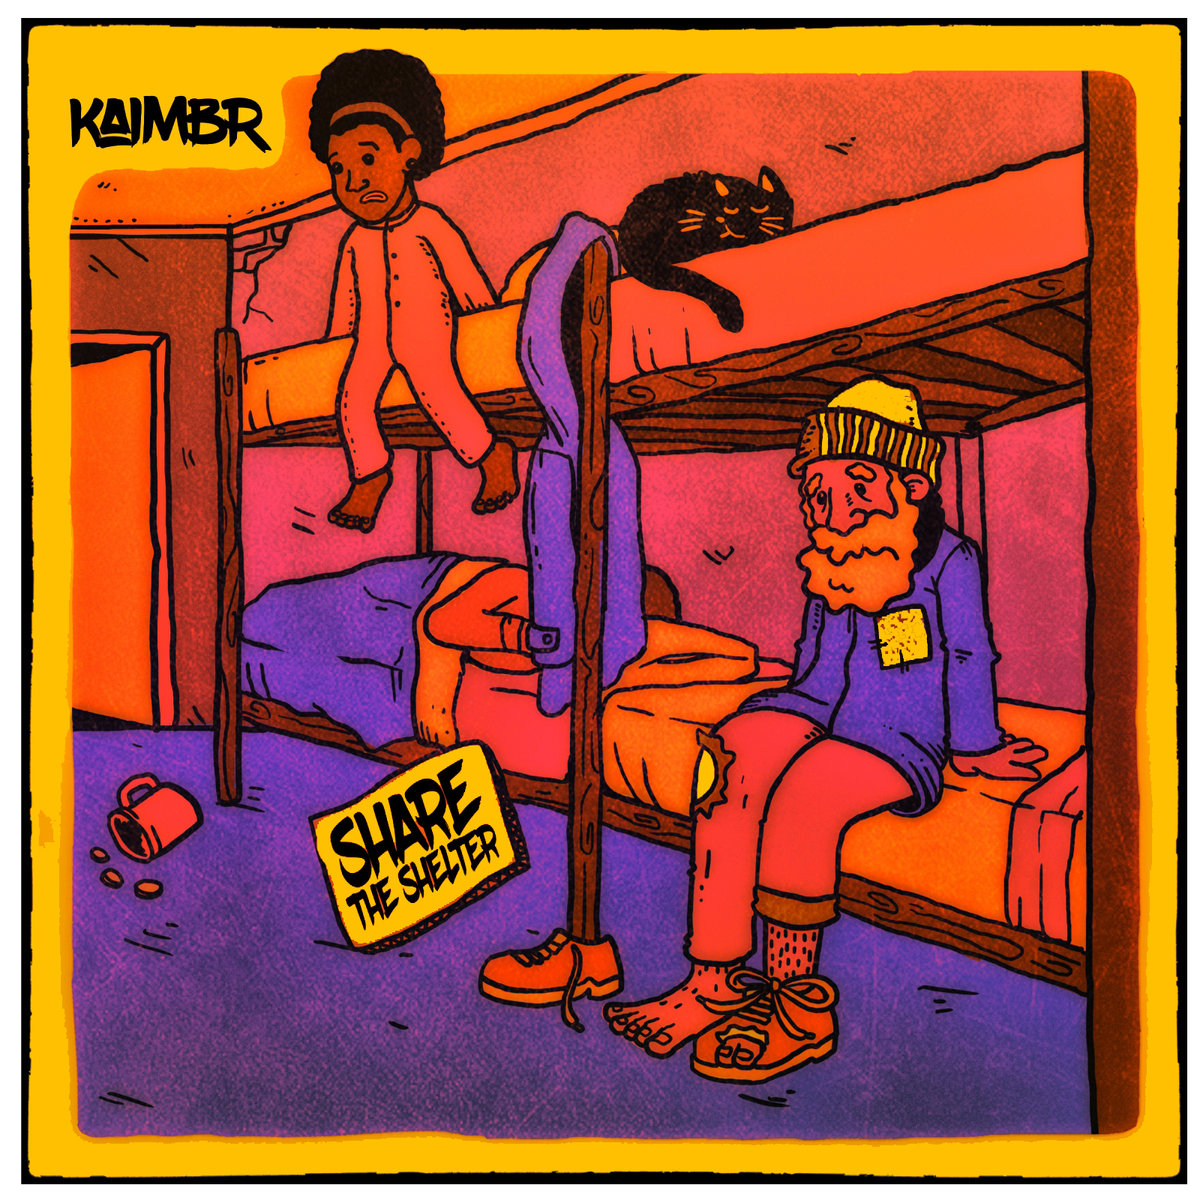 Kaimbr – Share The Shelter LP (Bonus Edition ft. Kev Brown, Grap Luva, Kenn Starr)